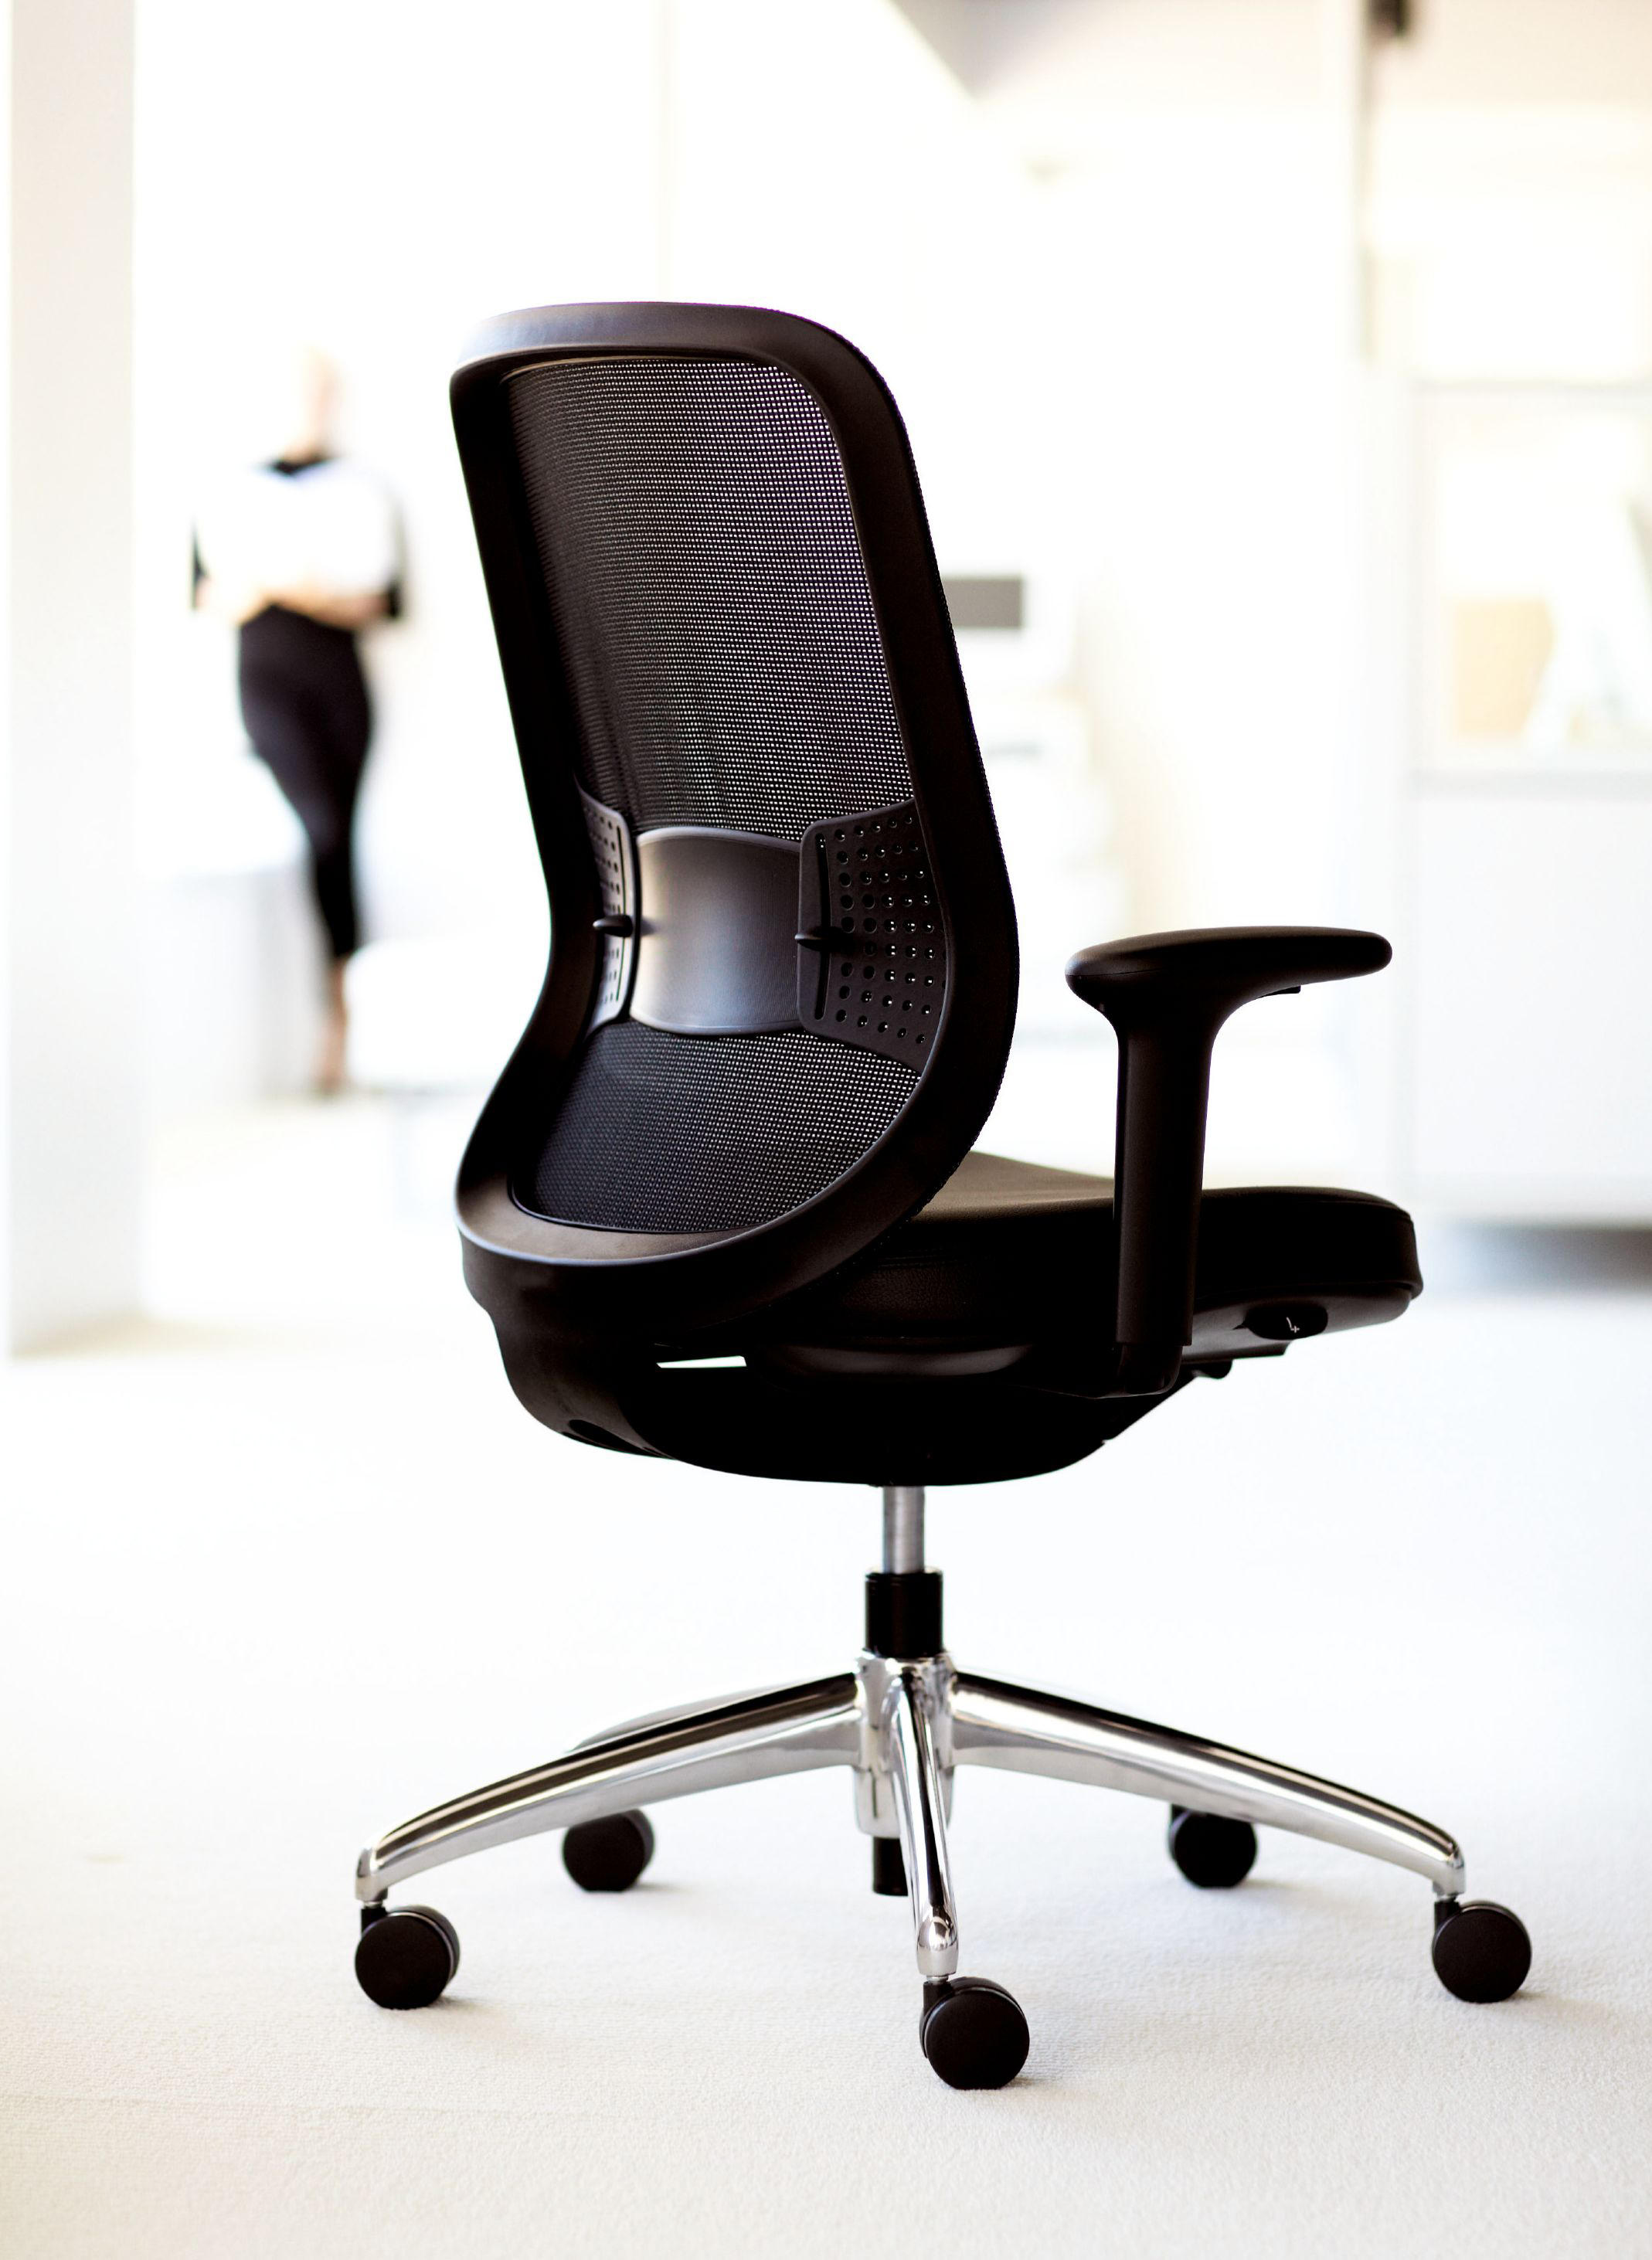 mesh back chairs for office cheap shampoo bowls and projek task chair - from teknion | architonic